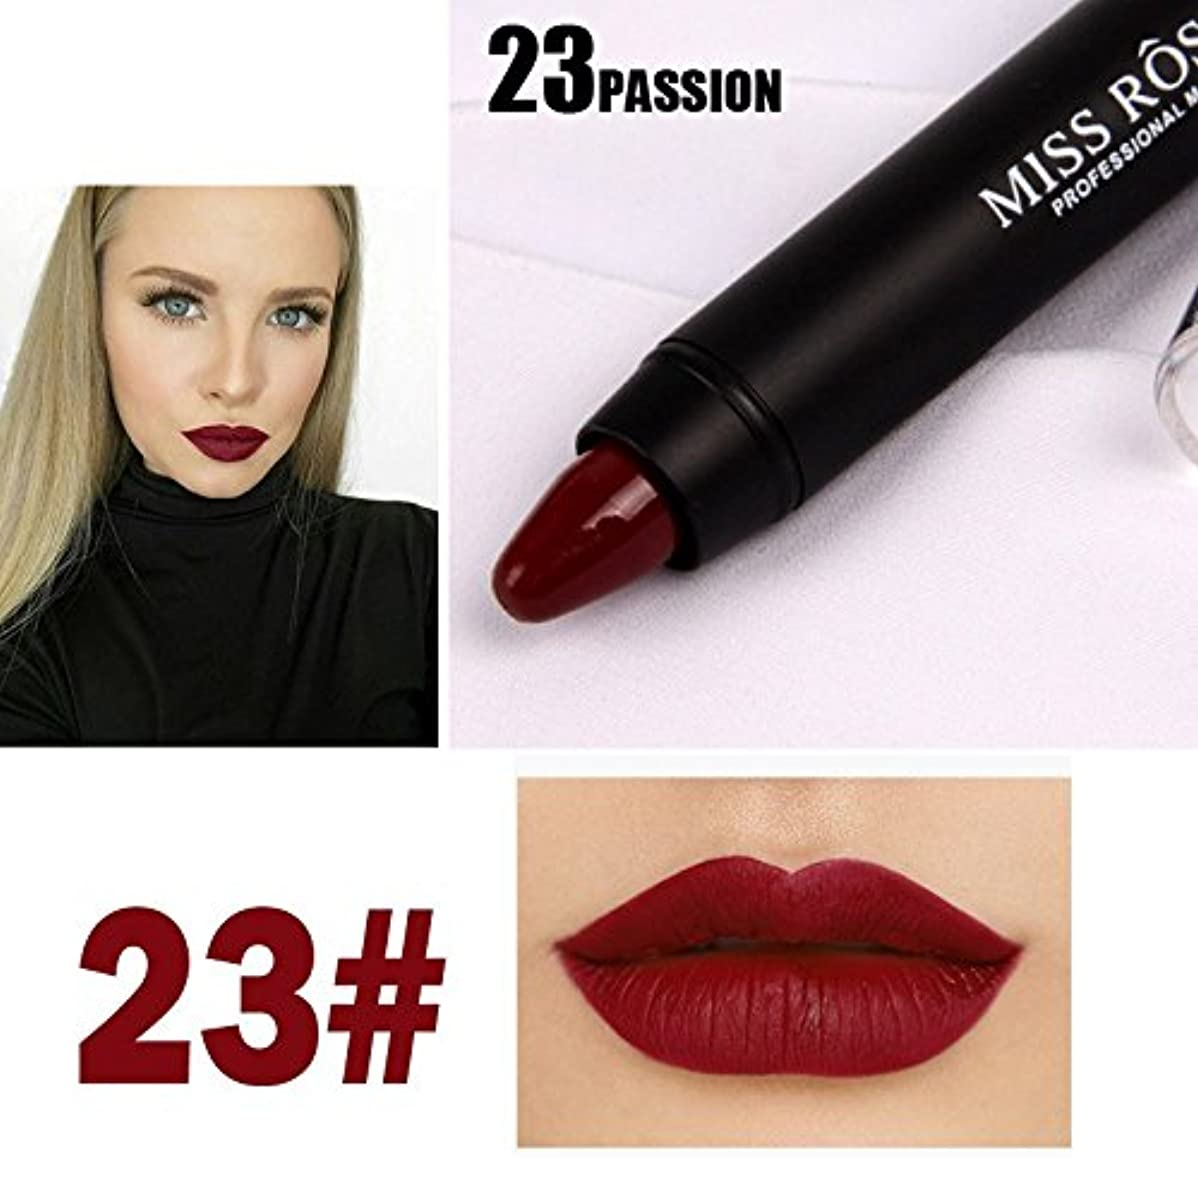 敵対的スキャンダル利益MISS ROSE Professional Women Waterproof Lipstick Lips Cream Beauty Lote Batom Matte Lipstick Nude Pencils Makeup